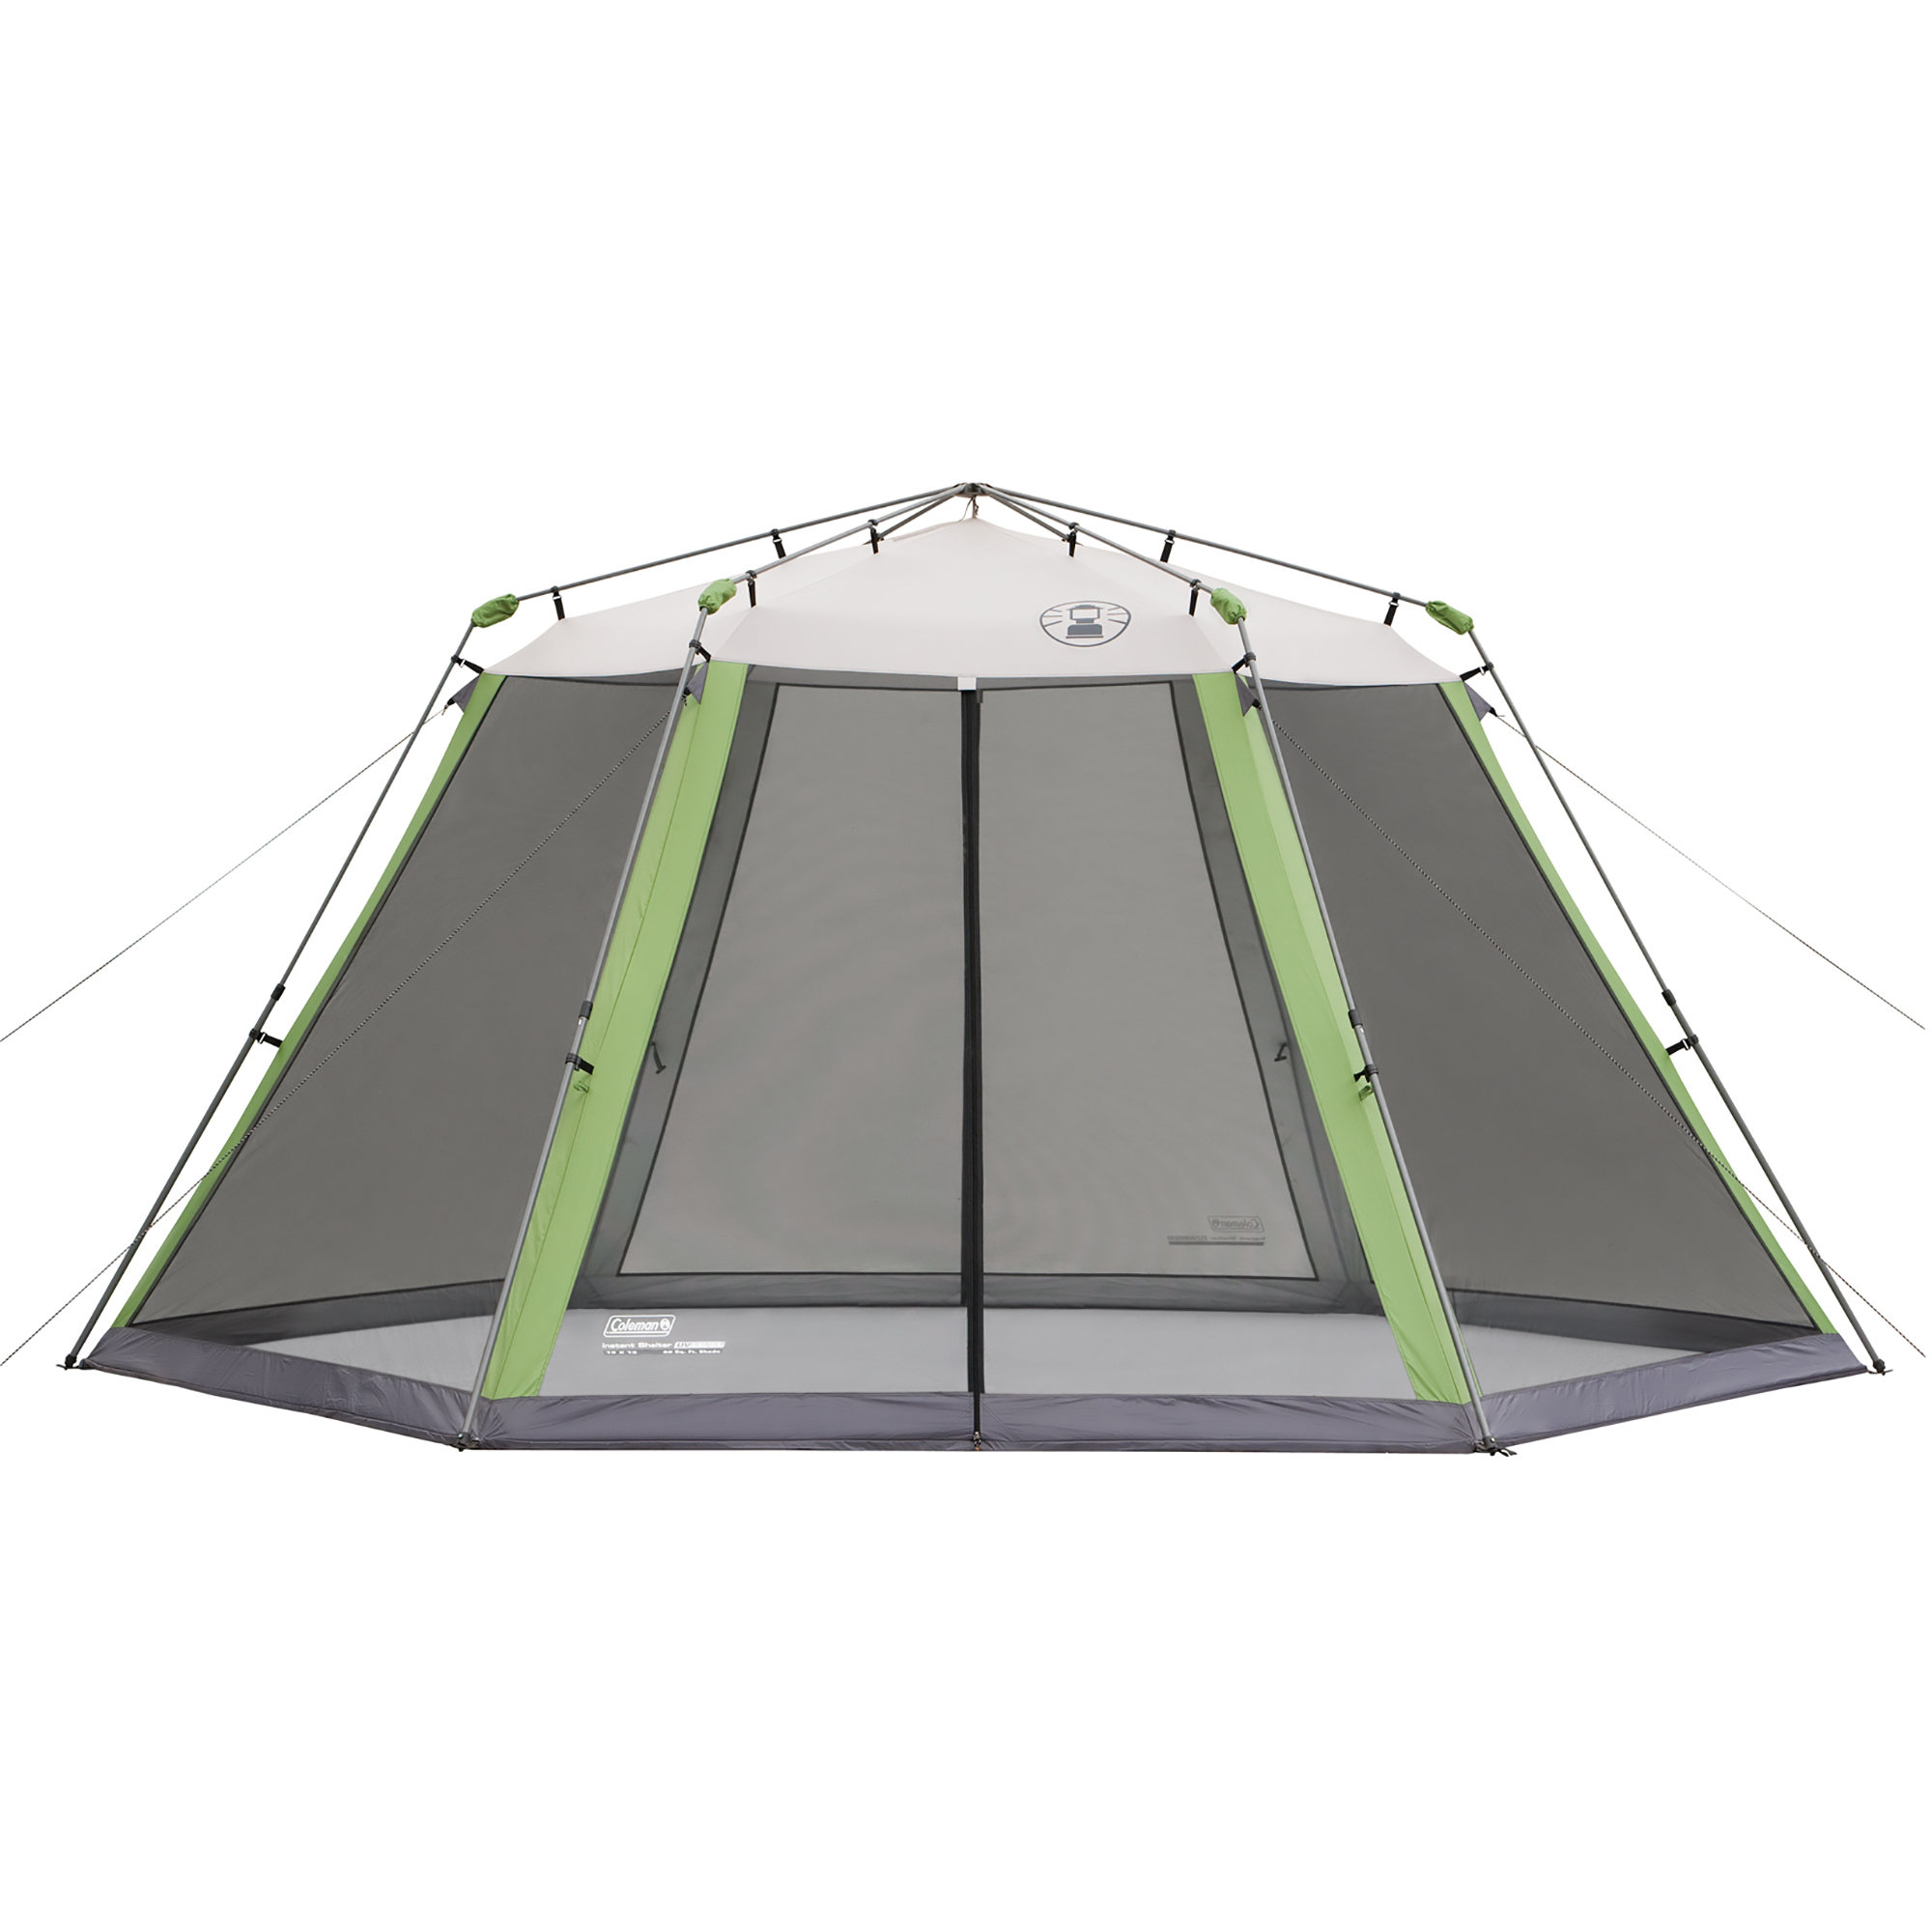 Pop Up Sun Shelter Canada Coleman Screened Canopy And Sun Shelter With 1 Min Set Up 15x13 Tent